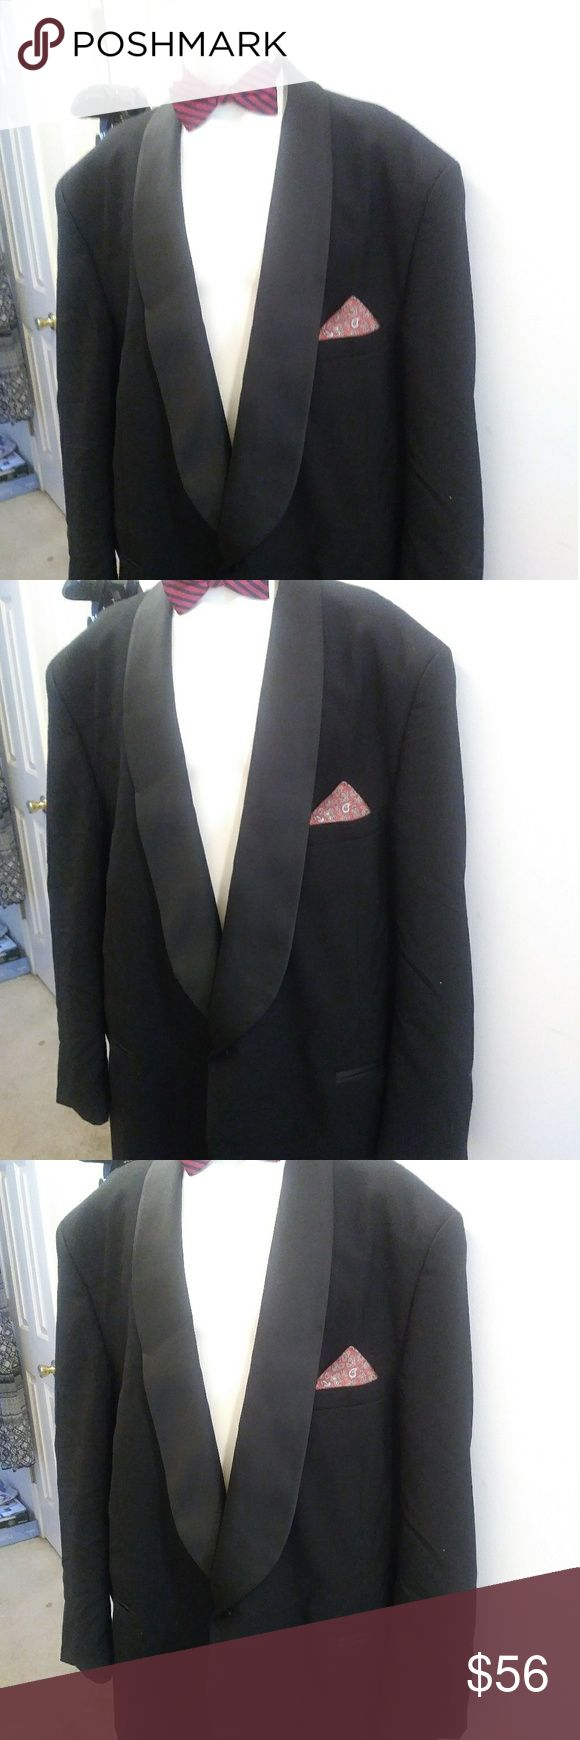 Pierre Cardin vintageTux $55 SZ 56 lg + free gift Pierre Cardin vintage tuxedo $55 SZ 56lg pants 42 x 32 + free gift any item priced $18 or less & Other Stories Suits & Blazers Tuxedos